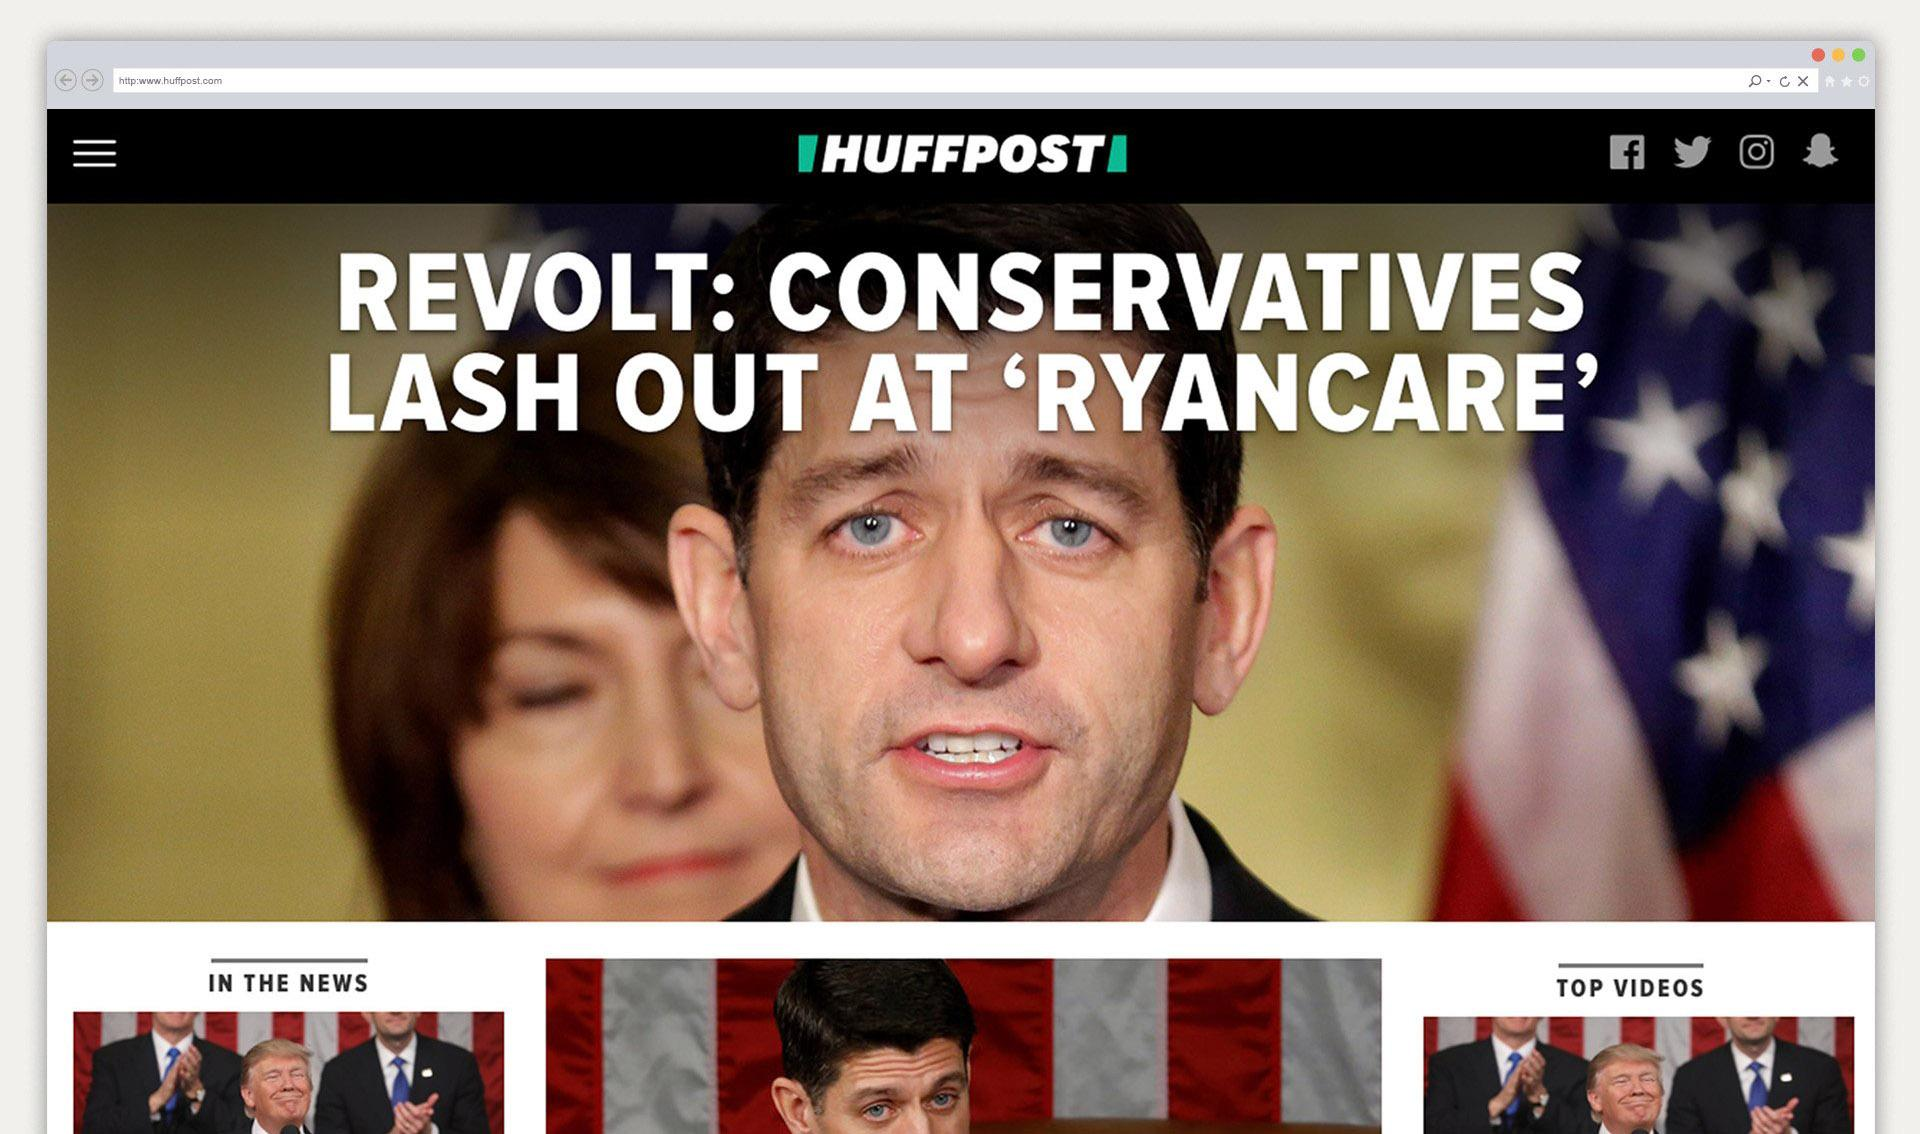 HuffPost website design